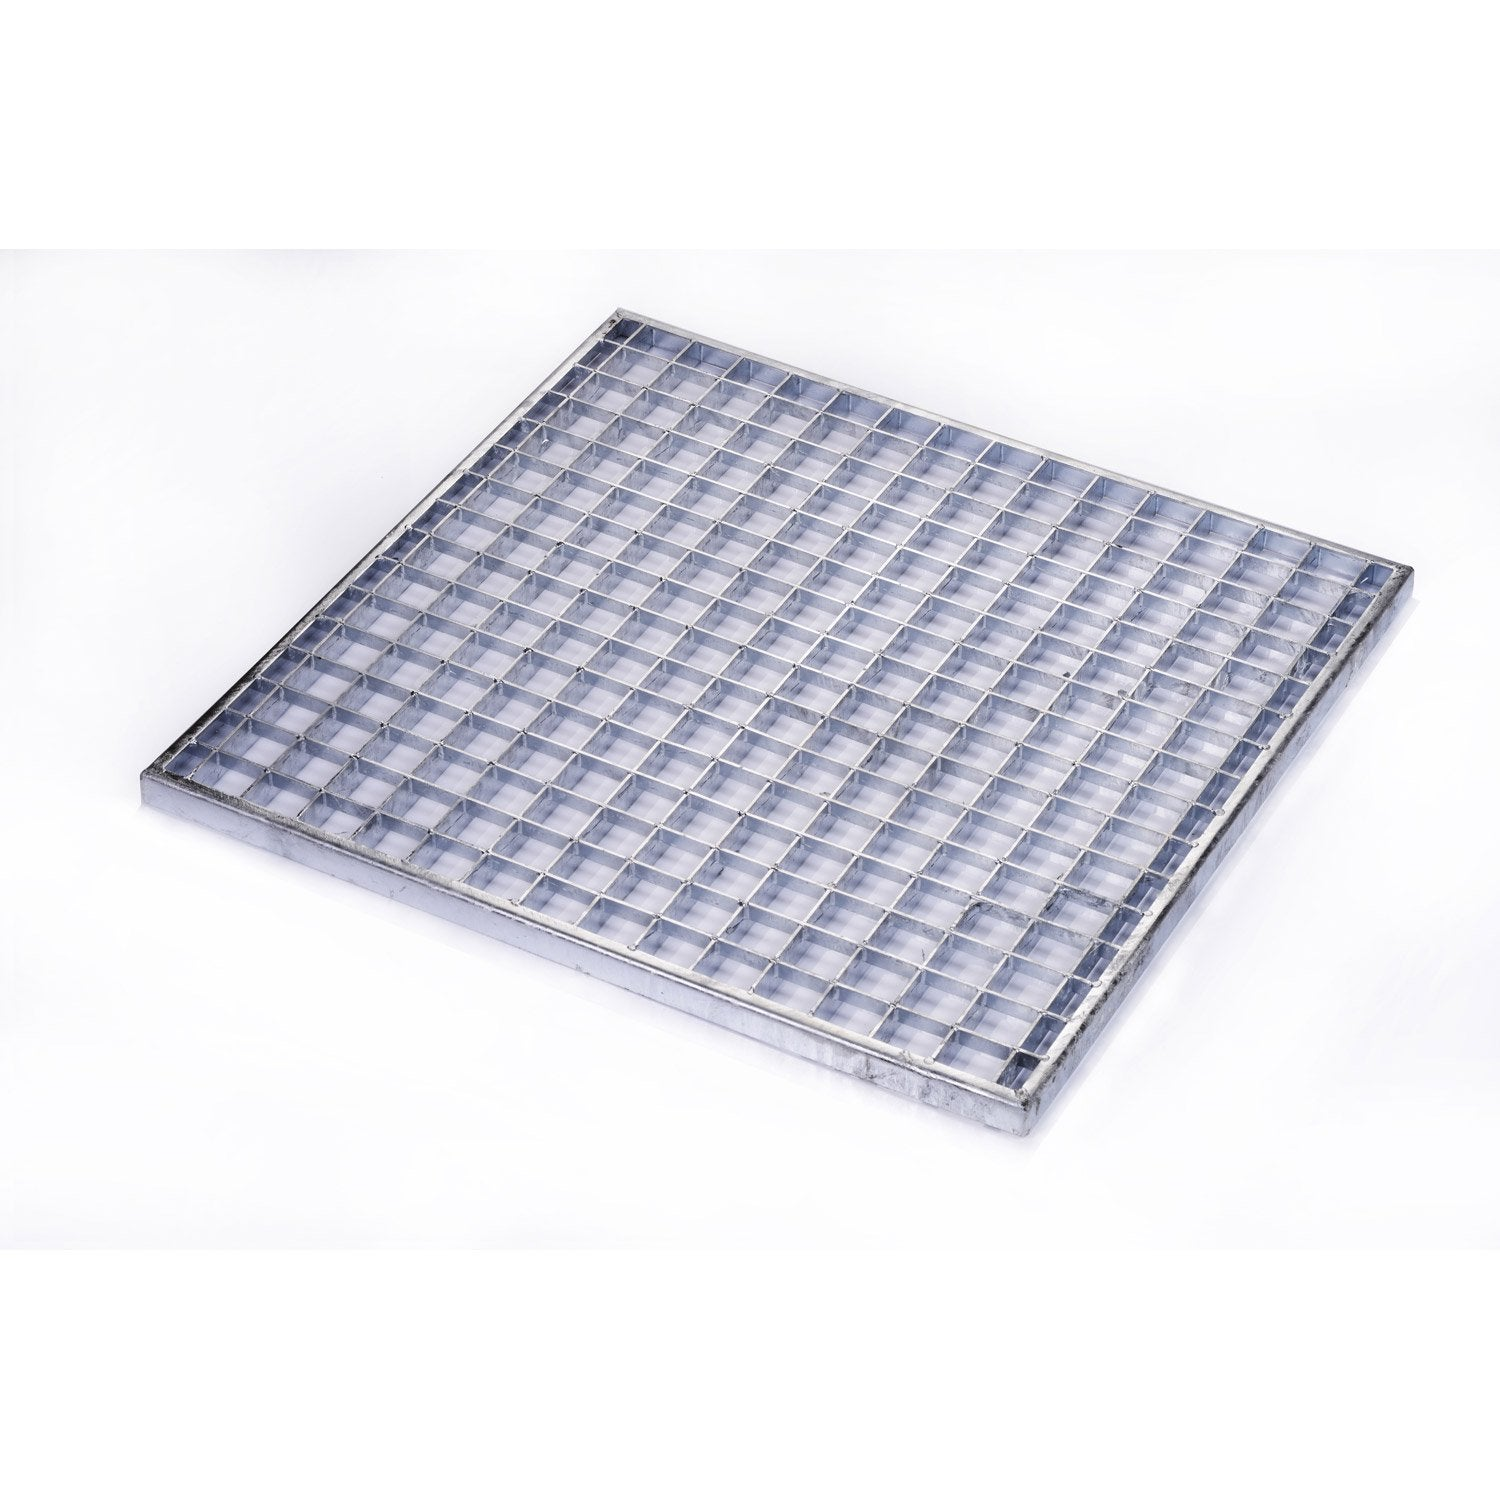 Grille caillebotis 430x430 mm leroy merlin - Grille barbecue leroy merlin ...